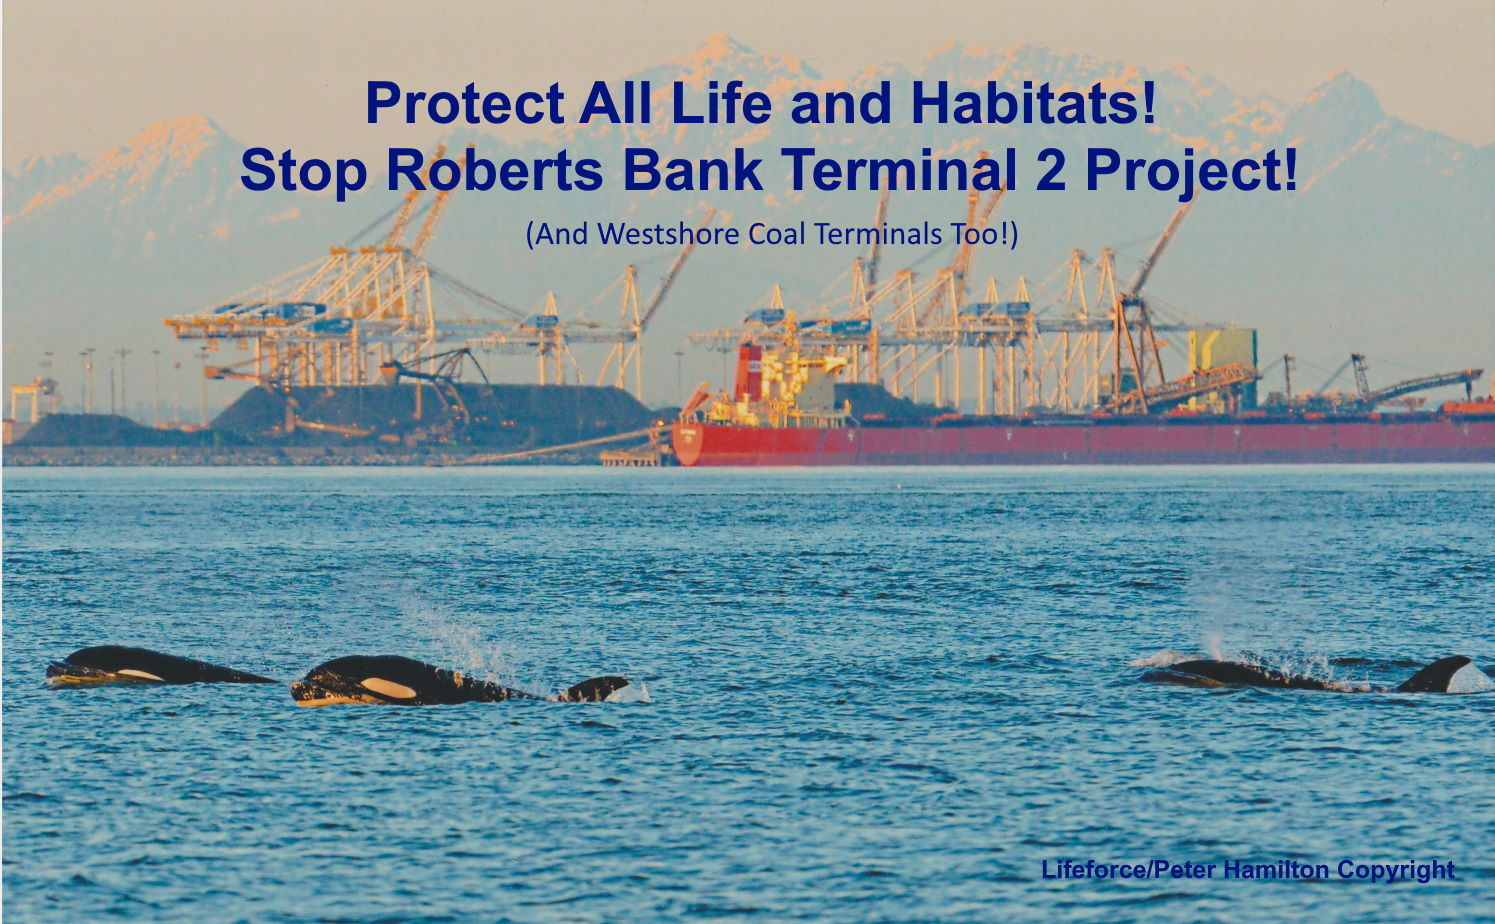 Hoping For The End Of Roberts Bank Terminal 2 Expansion!